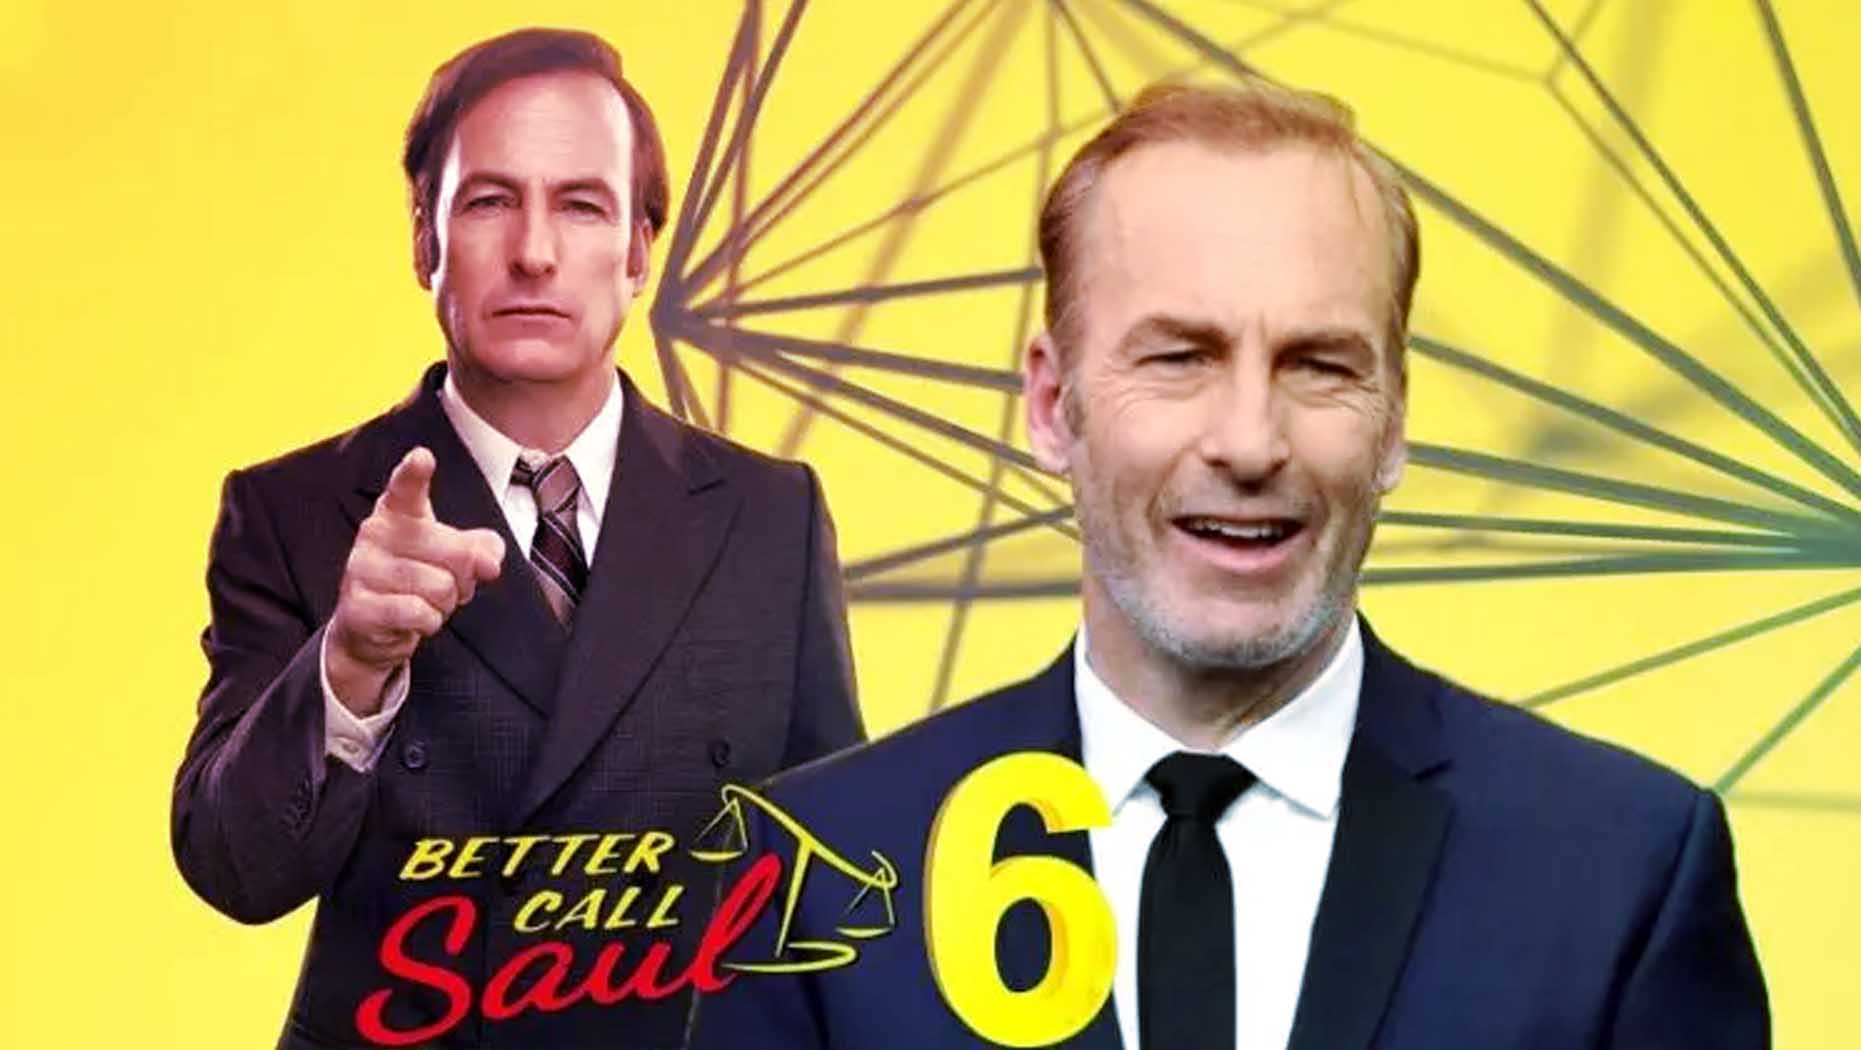 Better Call Saul Season 6 - Expected Release Date and Other Info - Daily  Research Plot